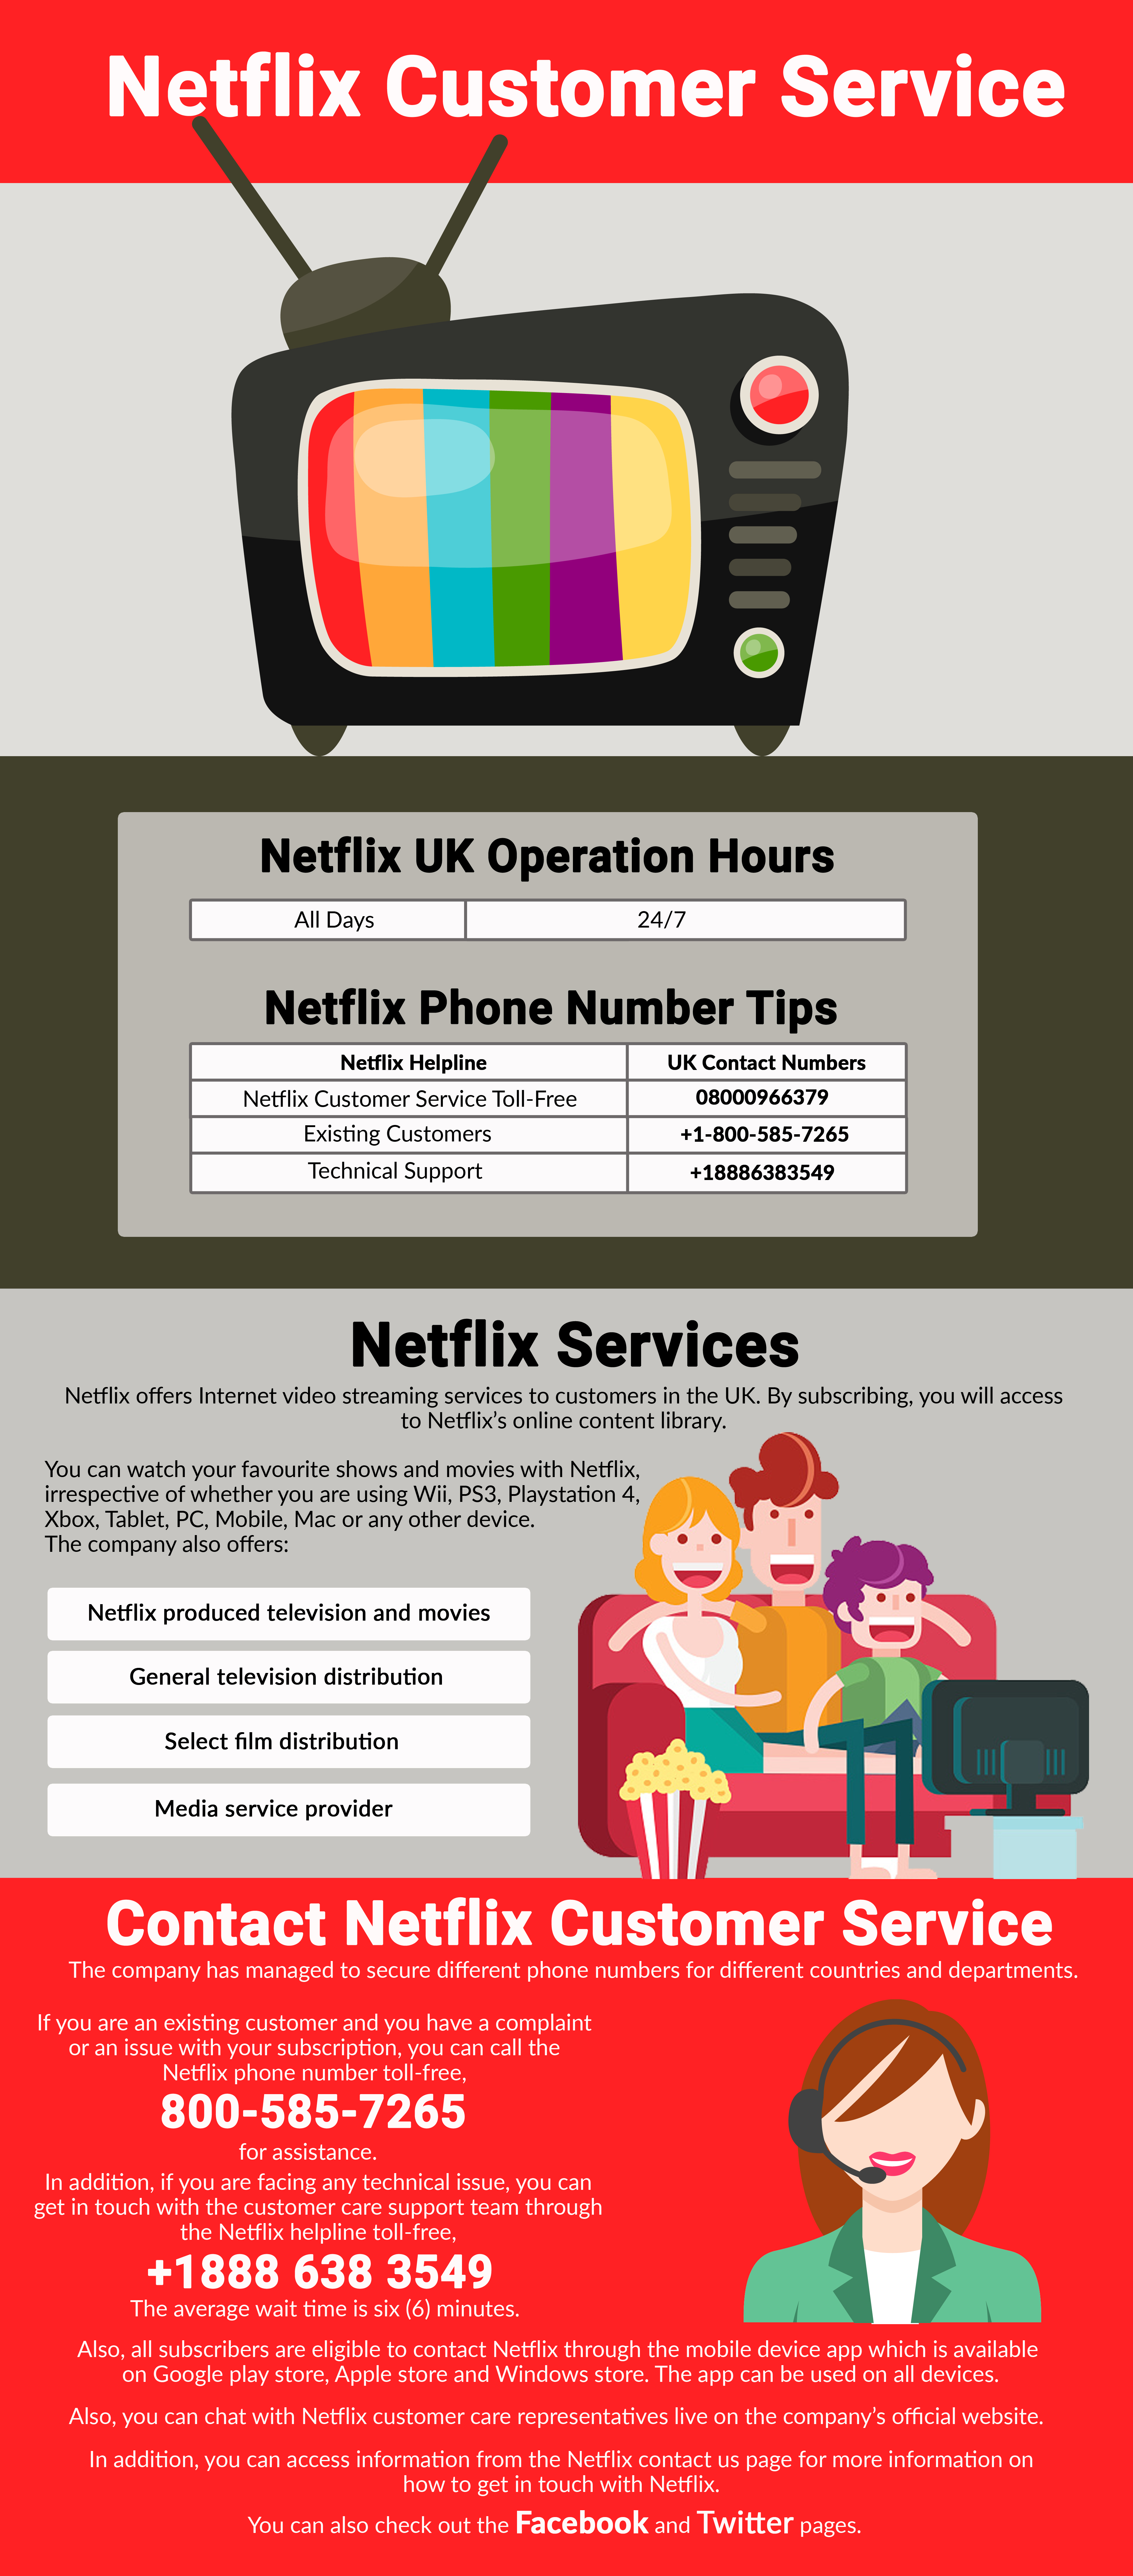 Netflix Customer Service Contact Number